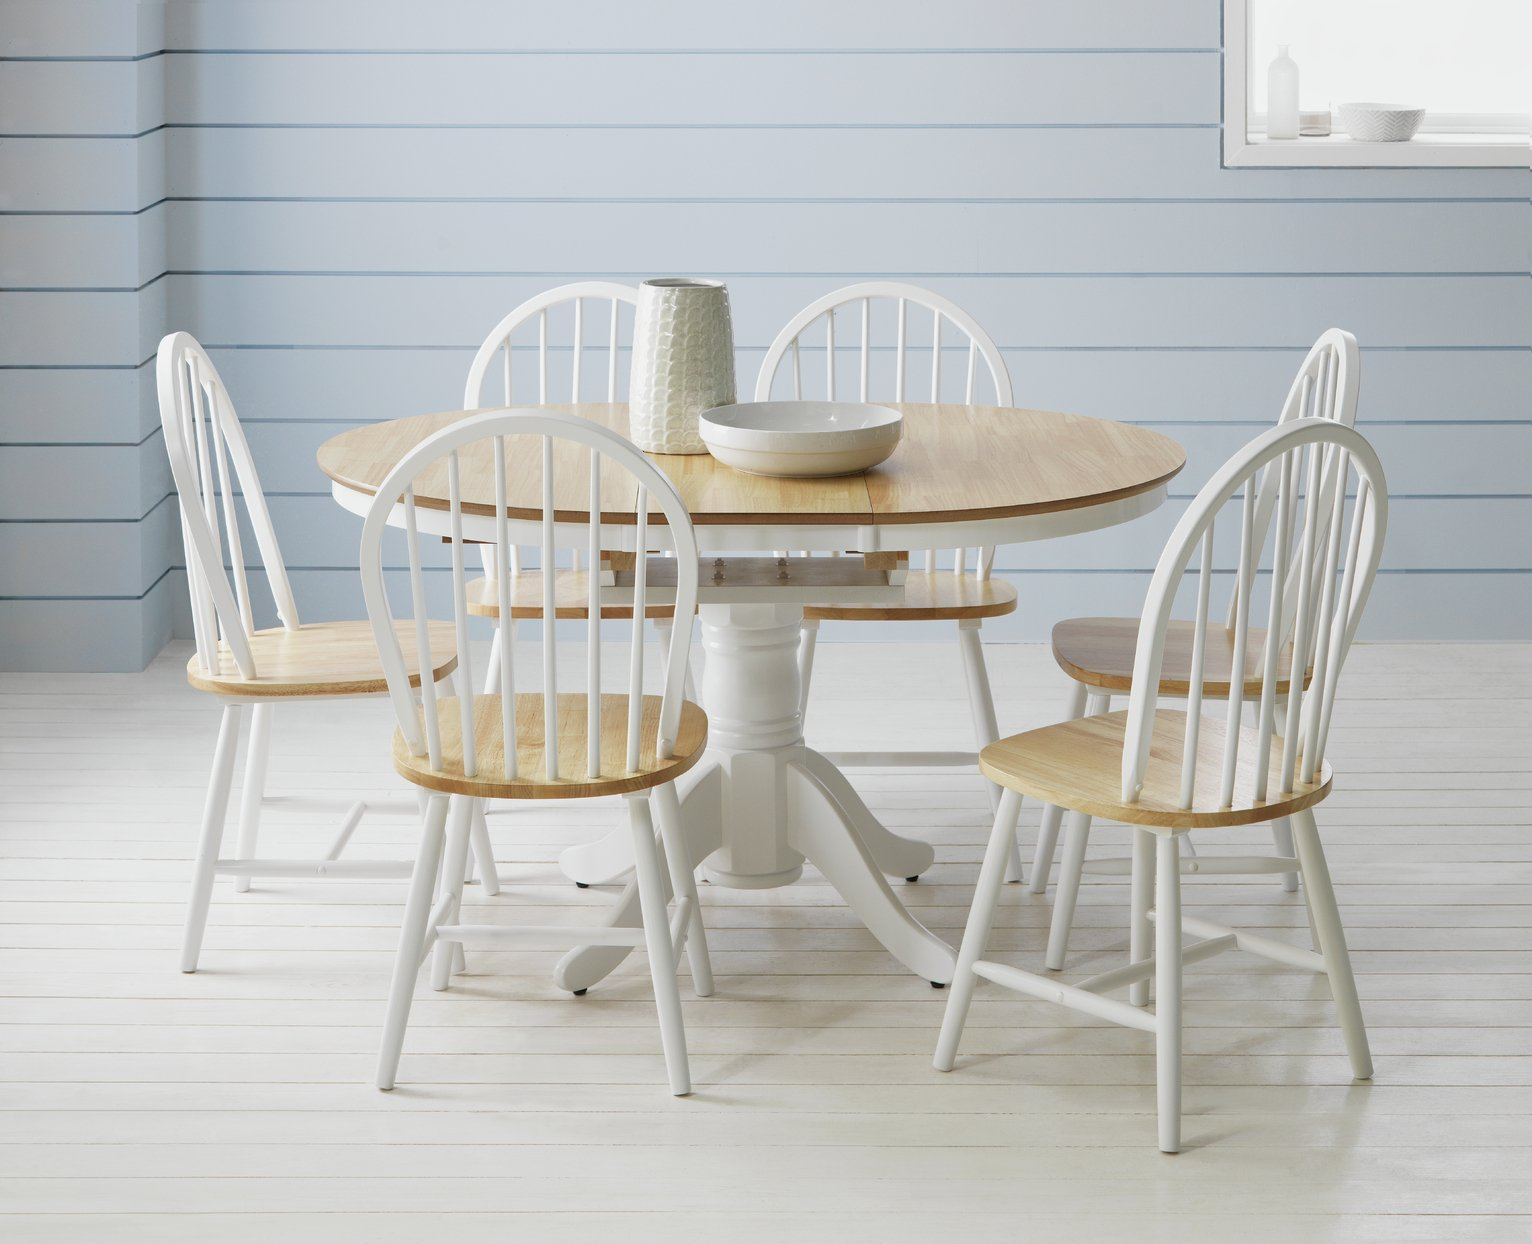 Buy Collection Kentucky Ext Dining Table and 6 Chairs Two  : 6035691RZ001CWebampw570amph513 from www.argos.co.uk size 570 x 513 jpeg 38kB